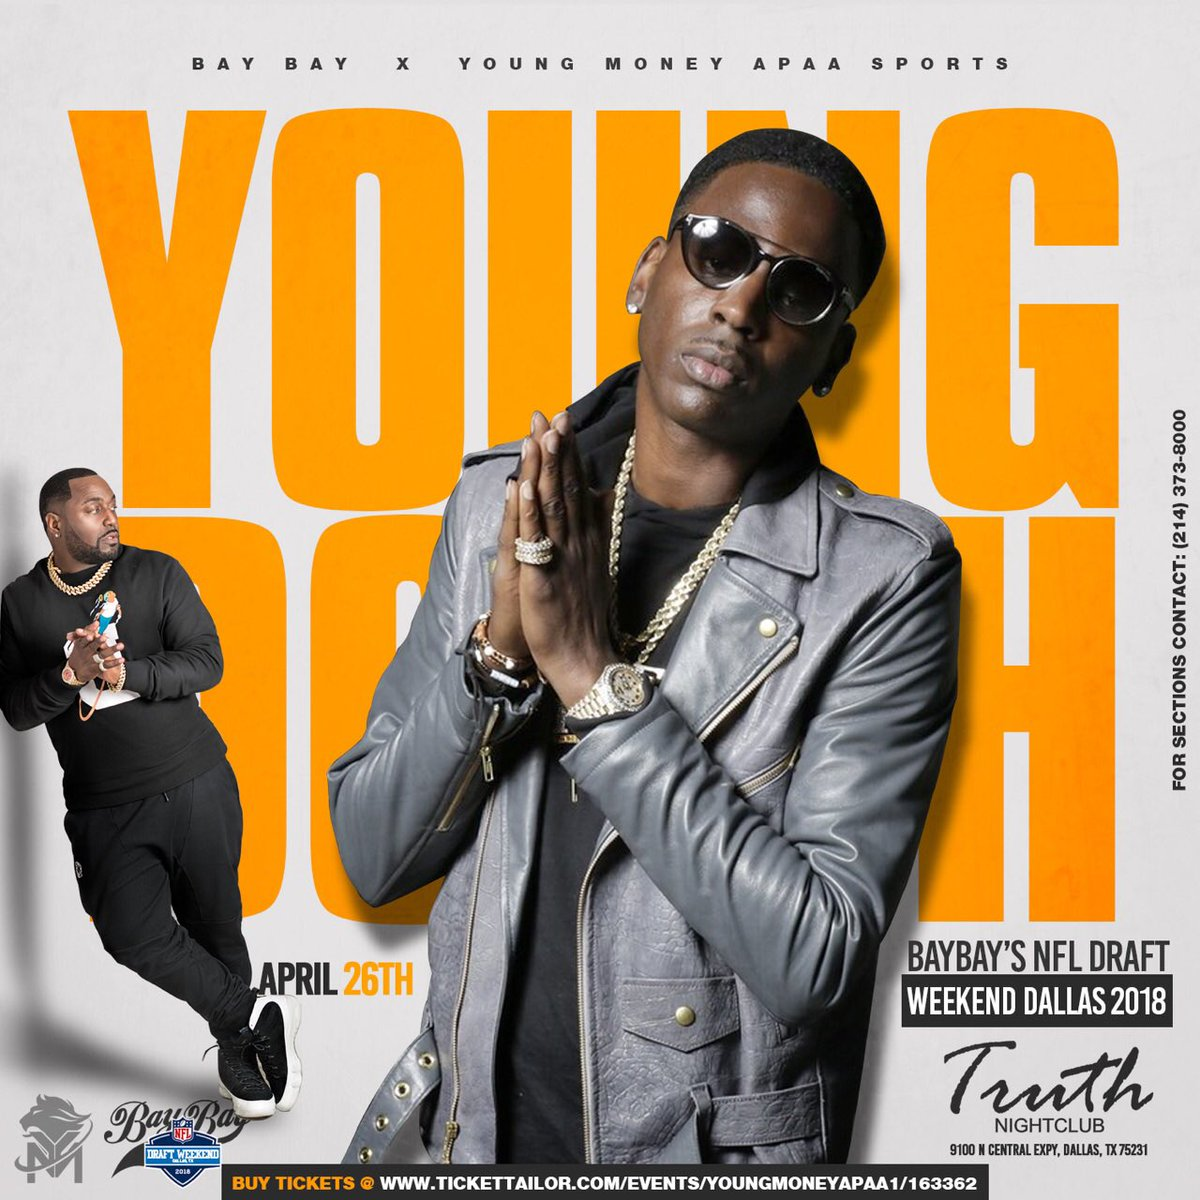 NEXT THURSDAY Doors Open At 8pm • @YoungDolph Will Be In The Building!!! Dont Miss The Young City Turn Up At Truth Nightclub  • 21+ #Dallas #DFW #Denton #DallasNightLife #TruthThursdays #YoungCityTurnUp #PriceGroup<br>http://pic.twitter.com/TlEK5x370t